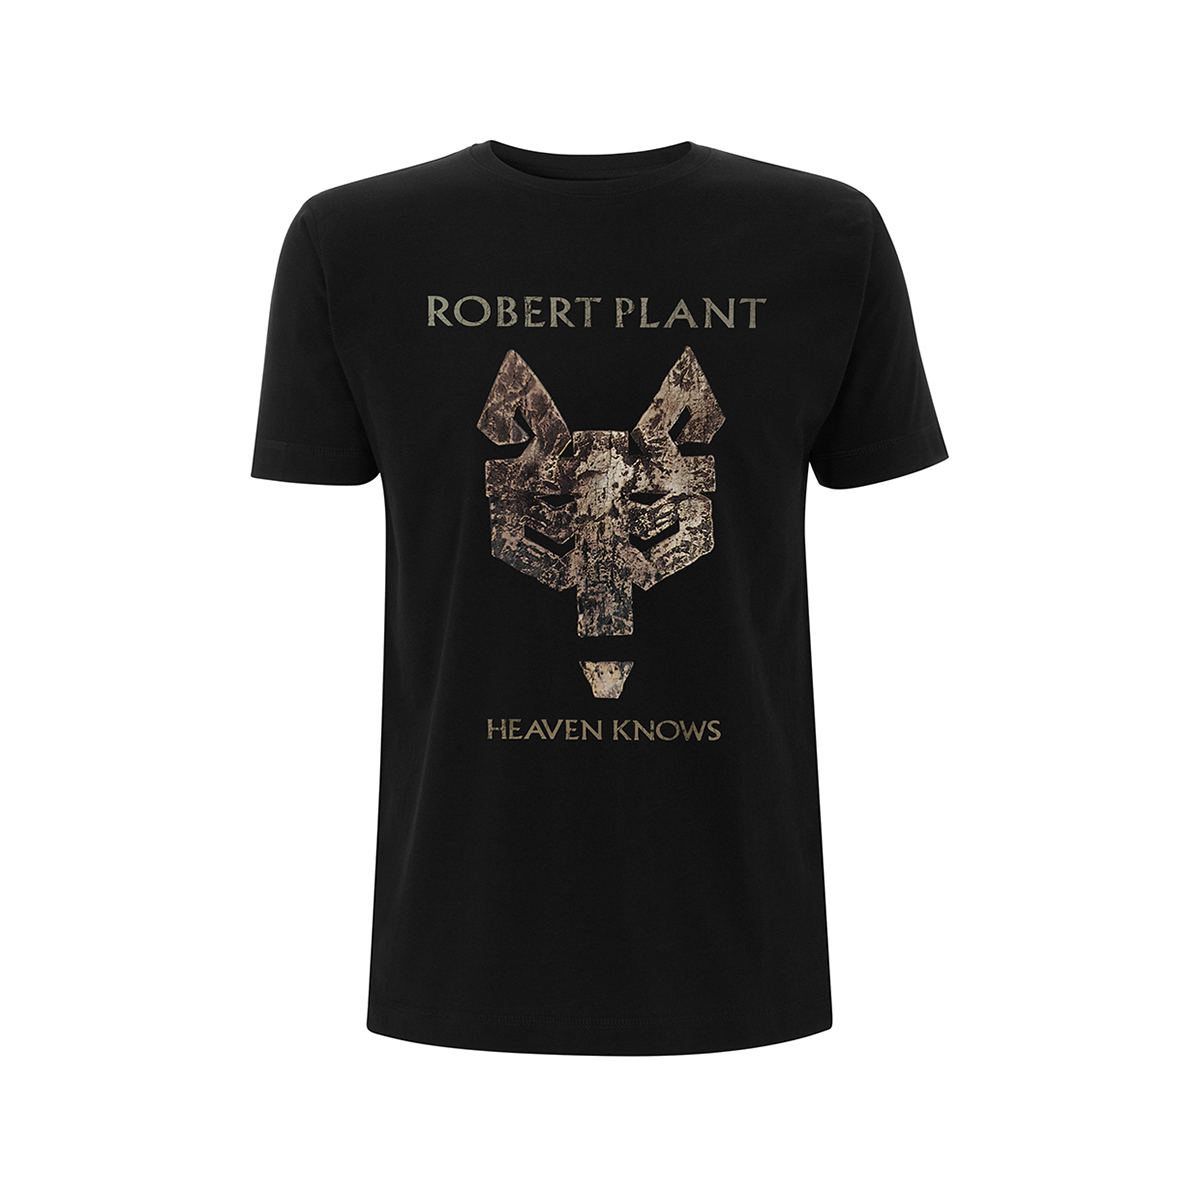 Heaven Knows – Tee - Robert Plant